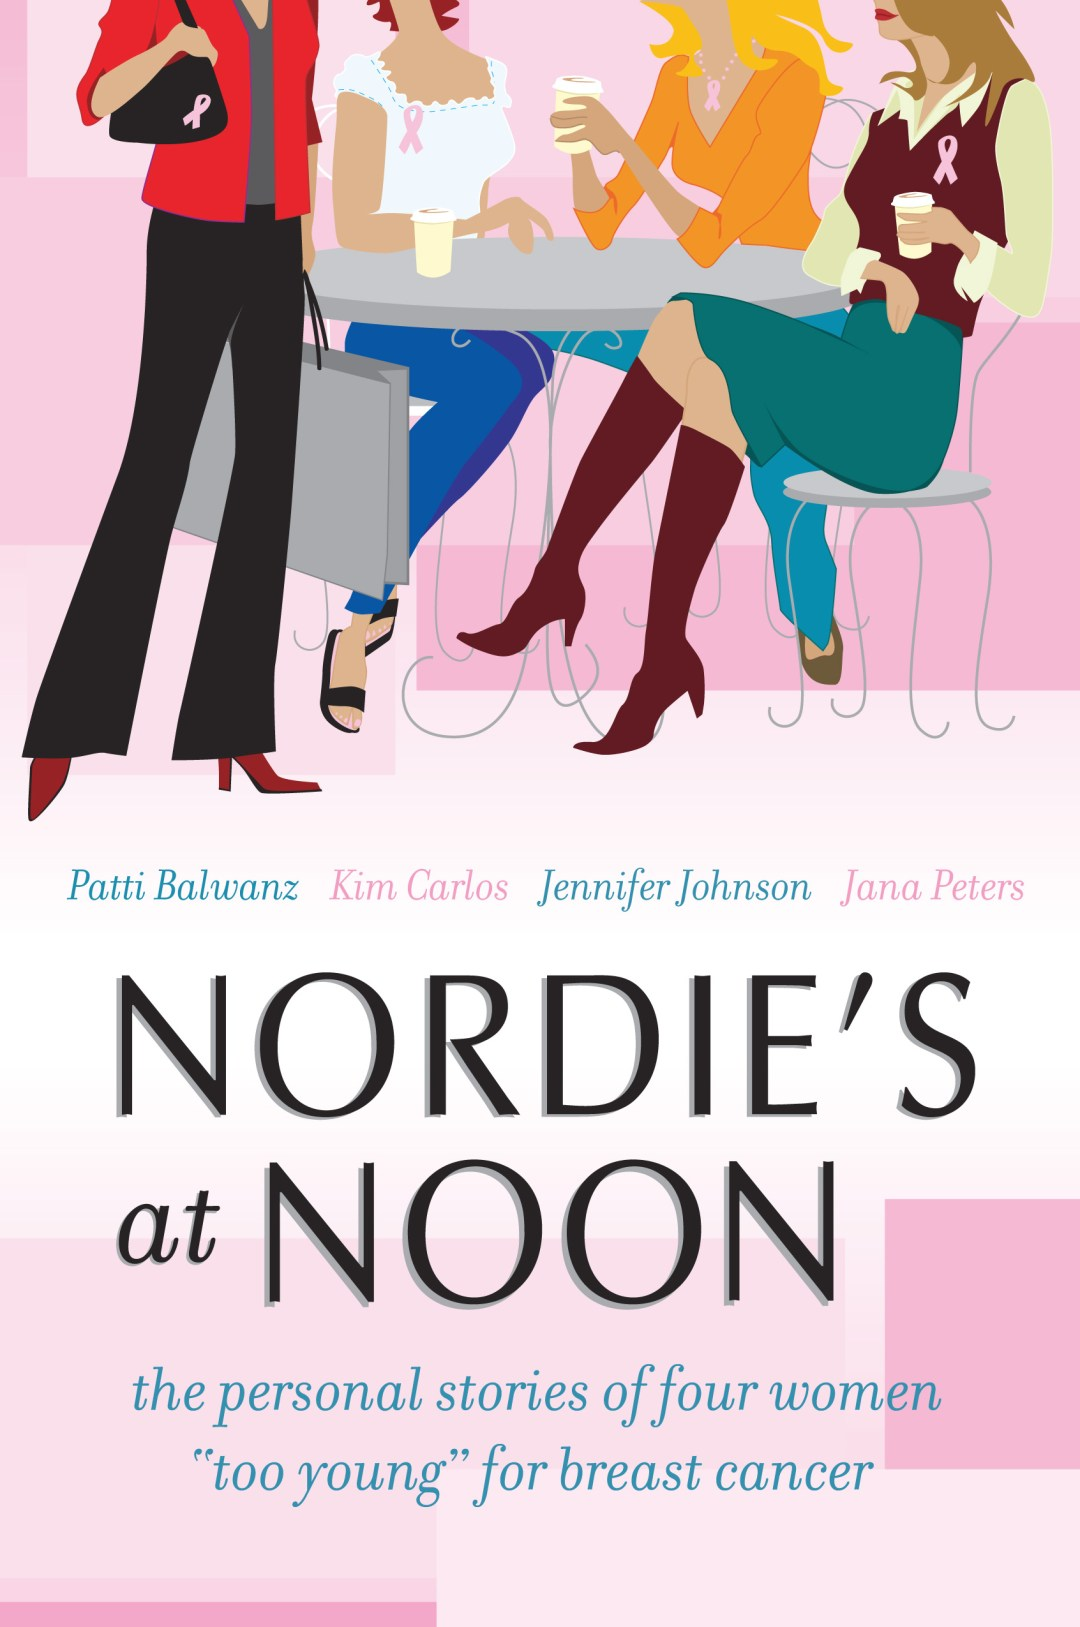 Kim-Becking-Looking-Forward-Living-Life-Coach-Divorce-Author-Speaker-Nordies-at-Noon